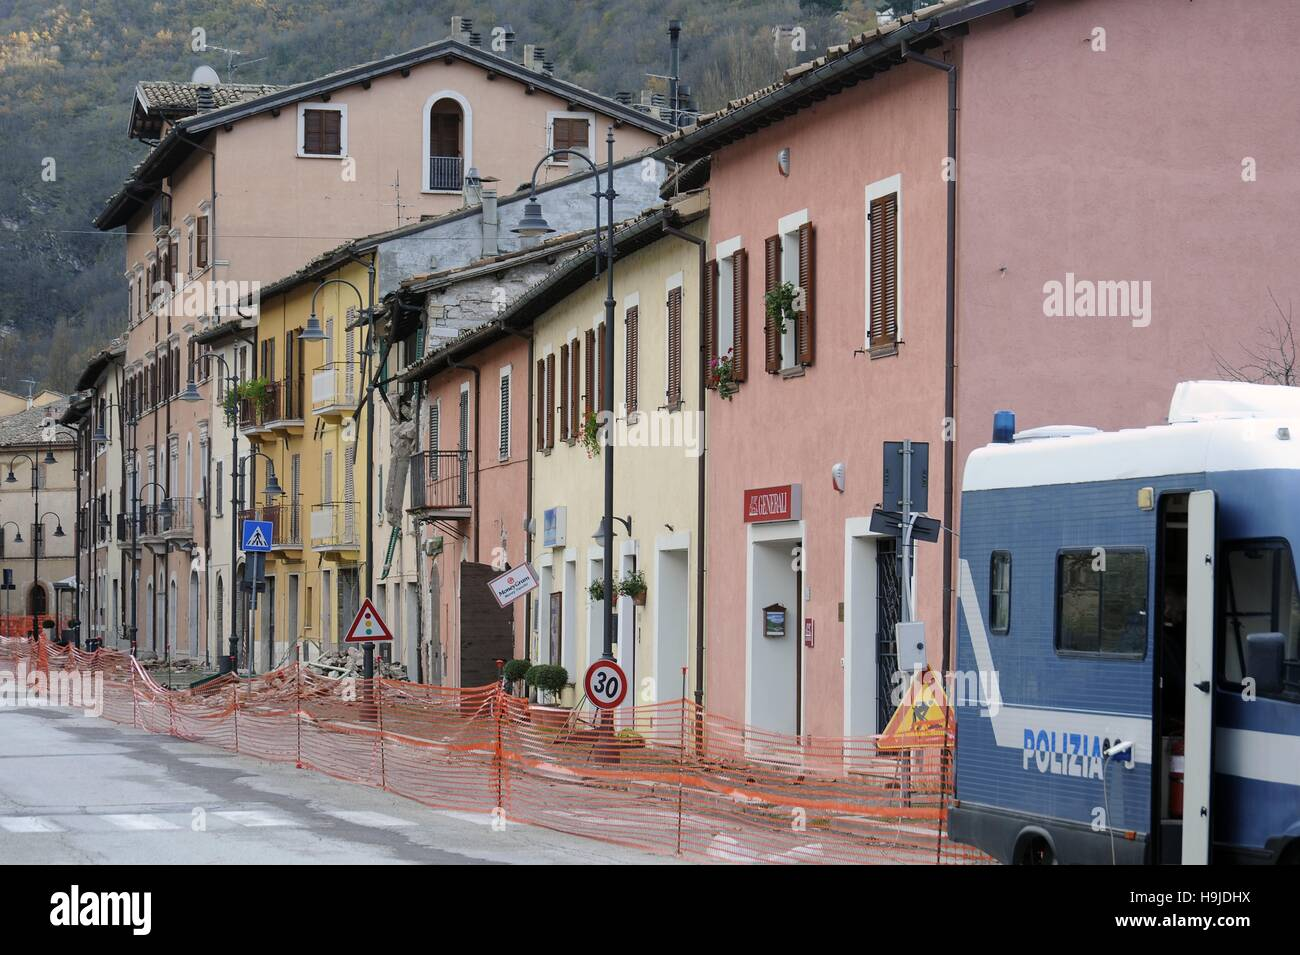 Earthquake in Center Italy, November 2016,  damaged and evacuated houses in Visso town (Marche region) - Stock Image